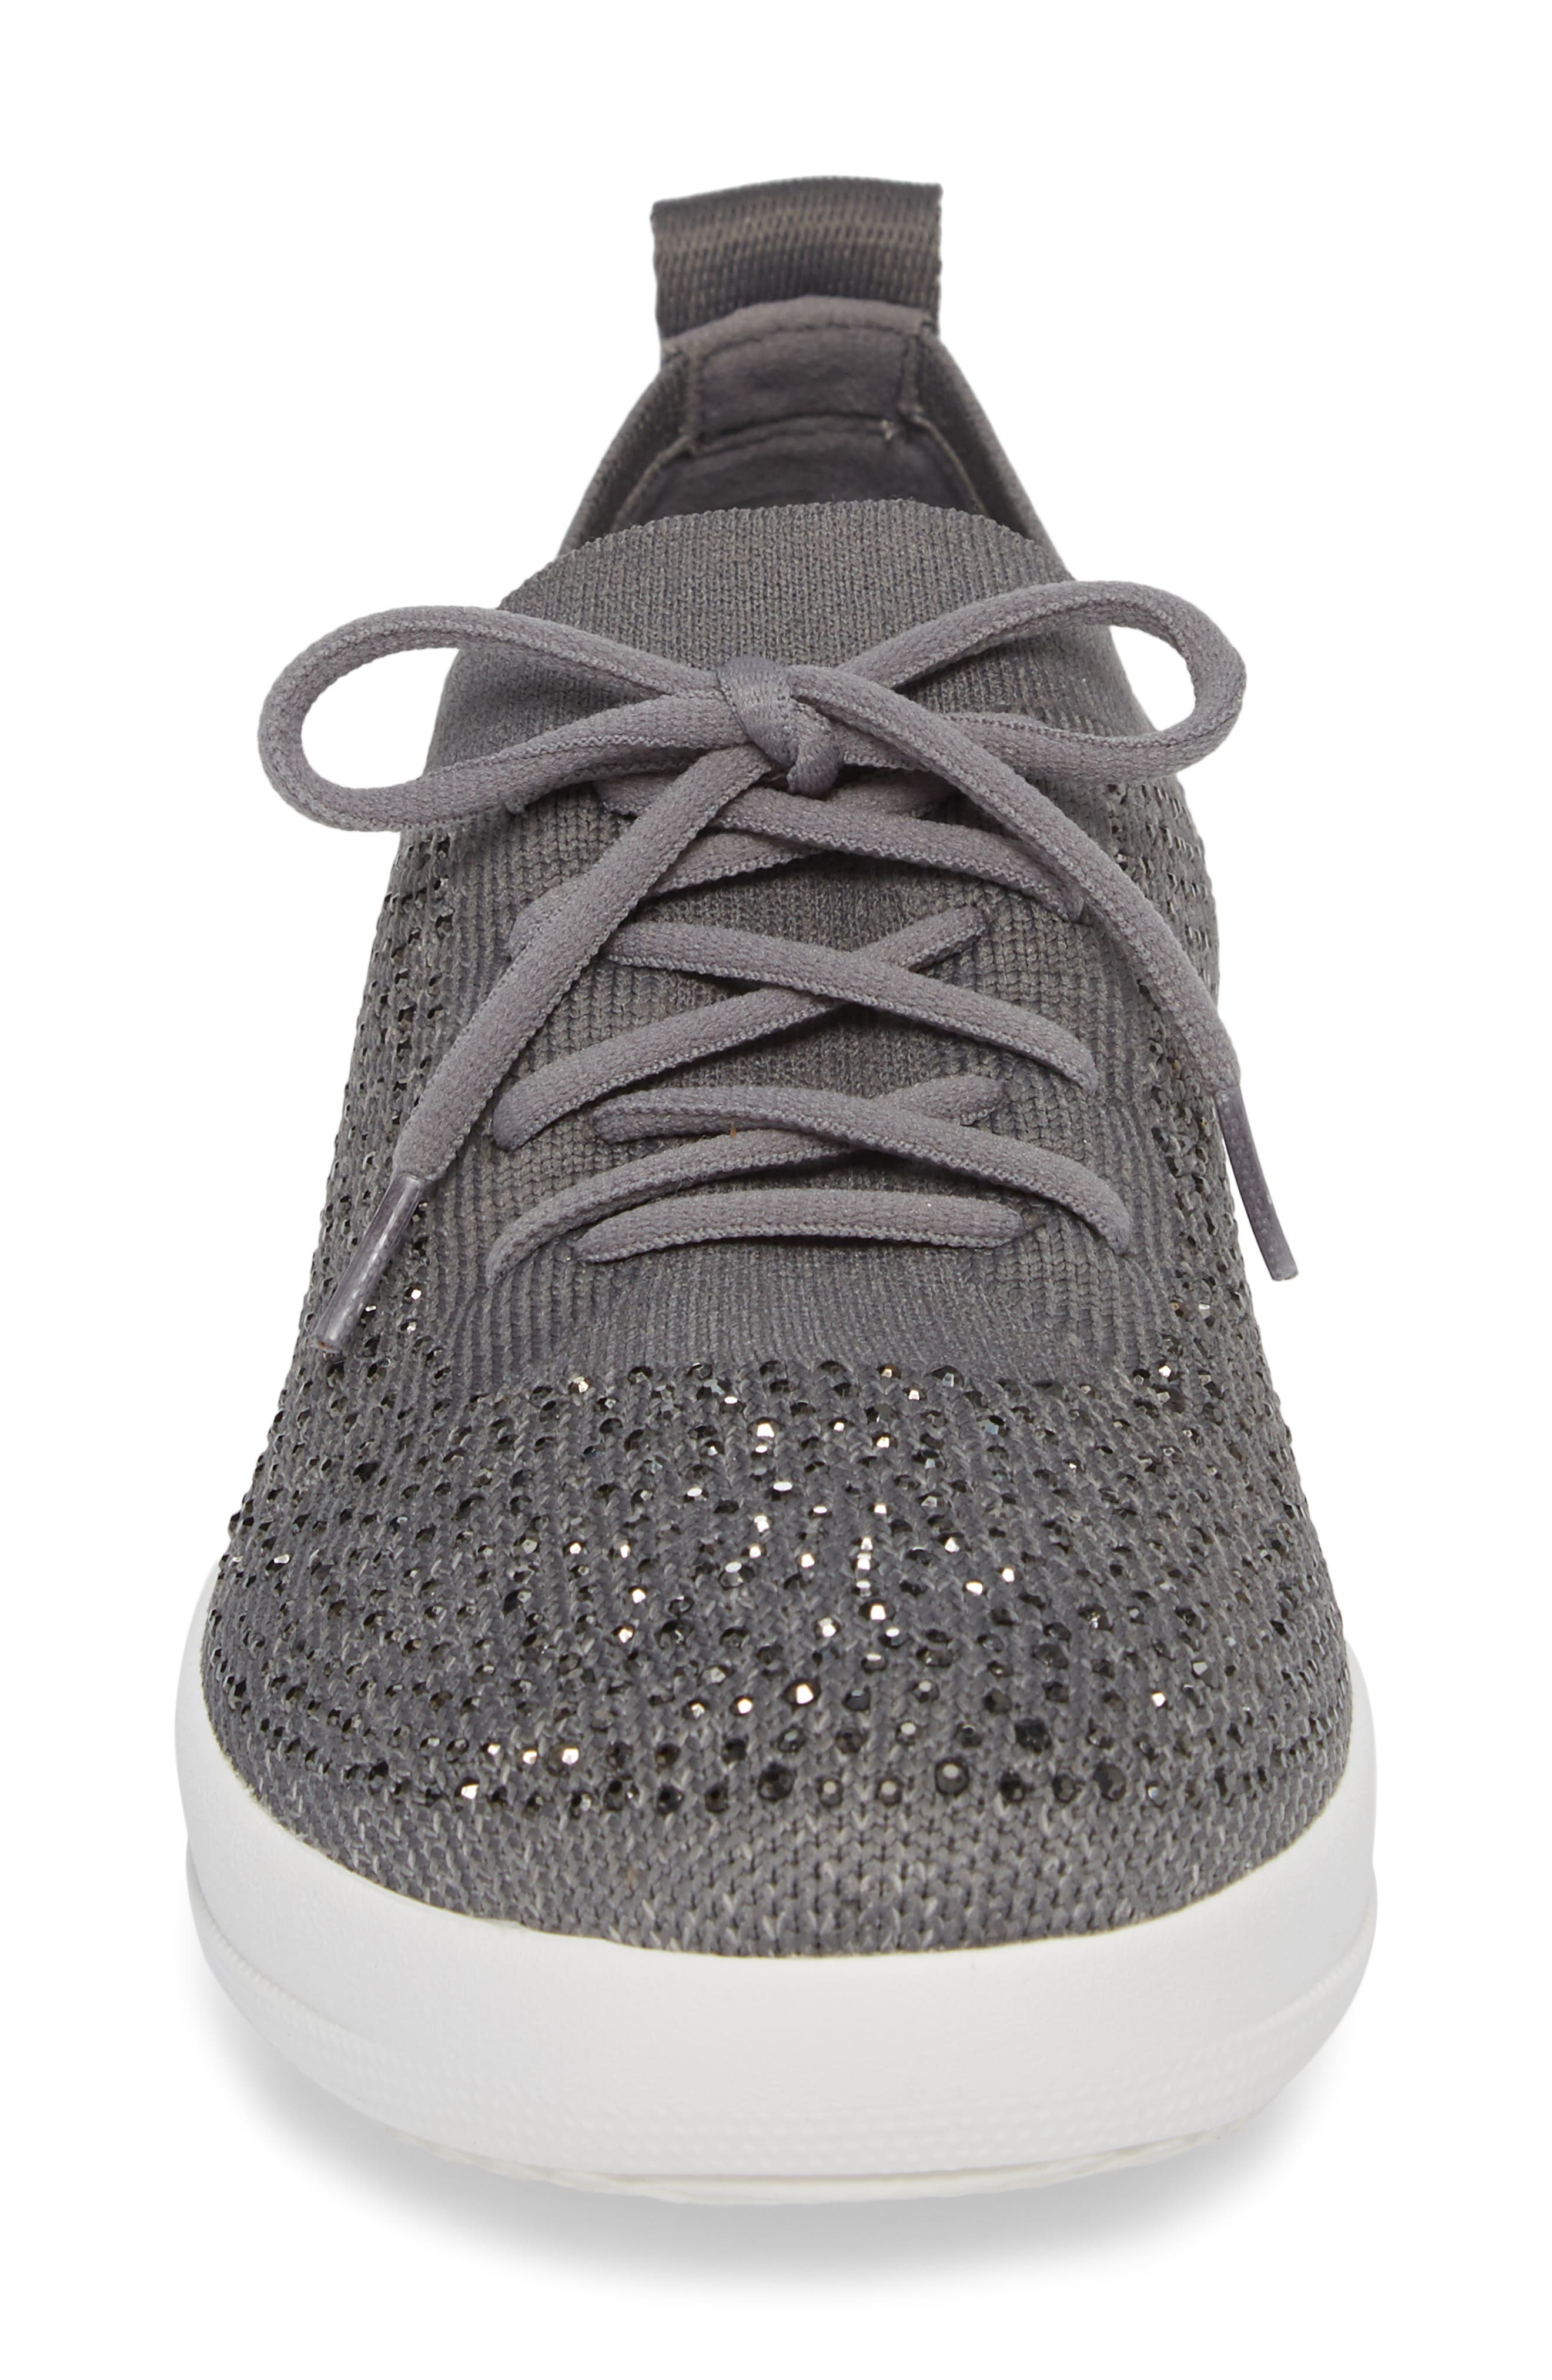 FITFLOP, Uberknit<sup>™</sup> F-Sporty Sneaker, Alternate thumbnail 4, color, CHARCOAL/ DUSTY GREY